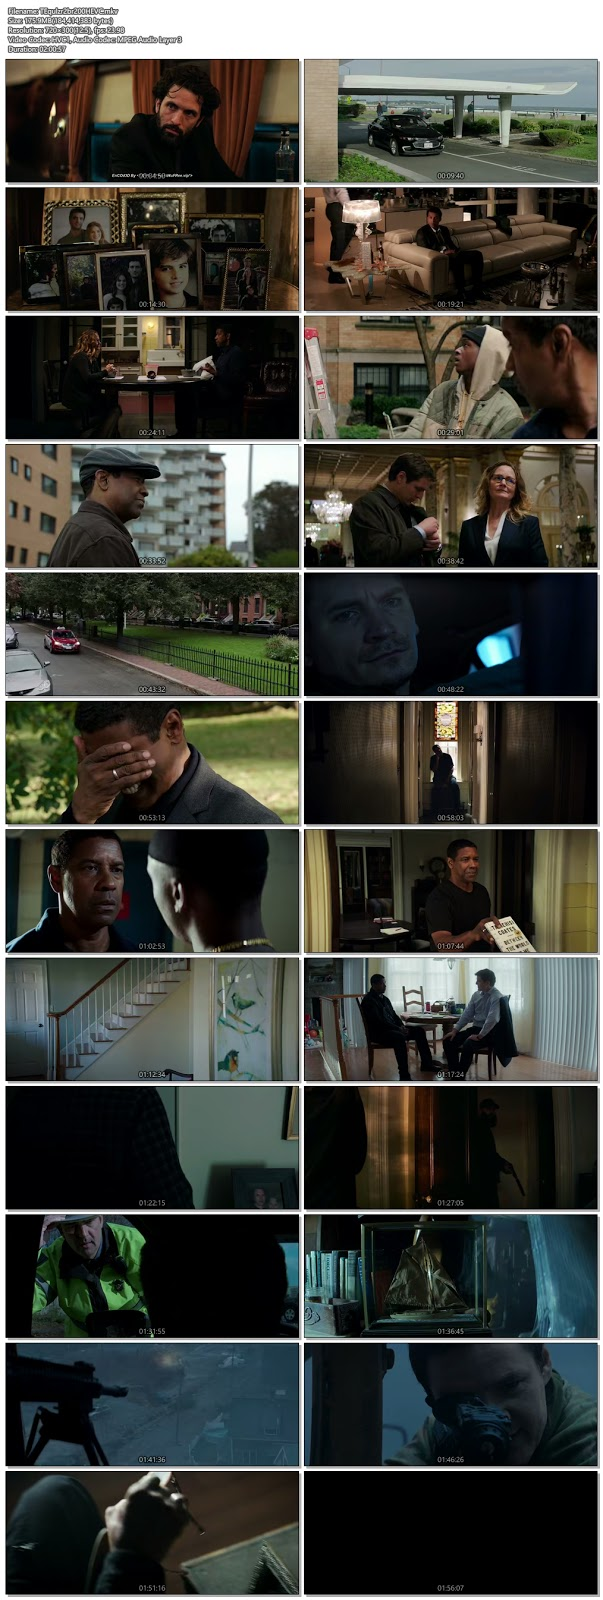 The Equalizer 2 2018 Eng BRRip 480p 200mb ESub HEVC x265 world4ufree.com.co hollywood movie The Equalizer 2 2018 english movie 720p BRRip blueray hdrip webrip The Equalizer 2 2018 web-dl 720p free download or watch online at world4ufree.com.co